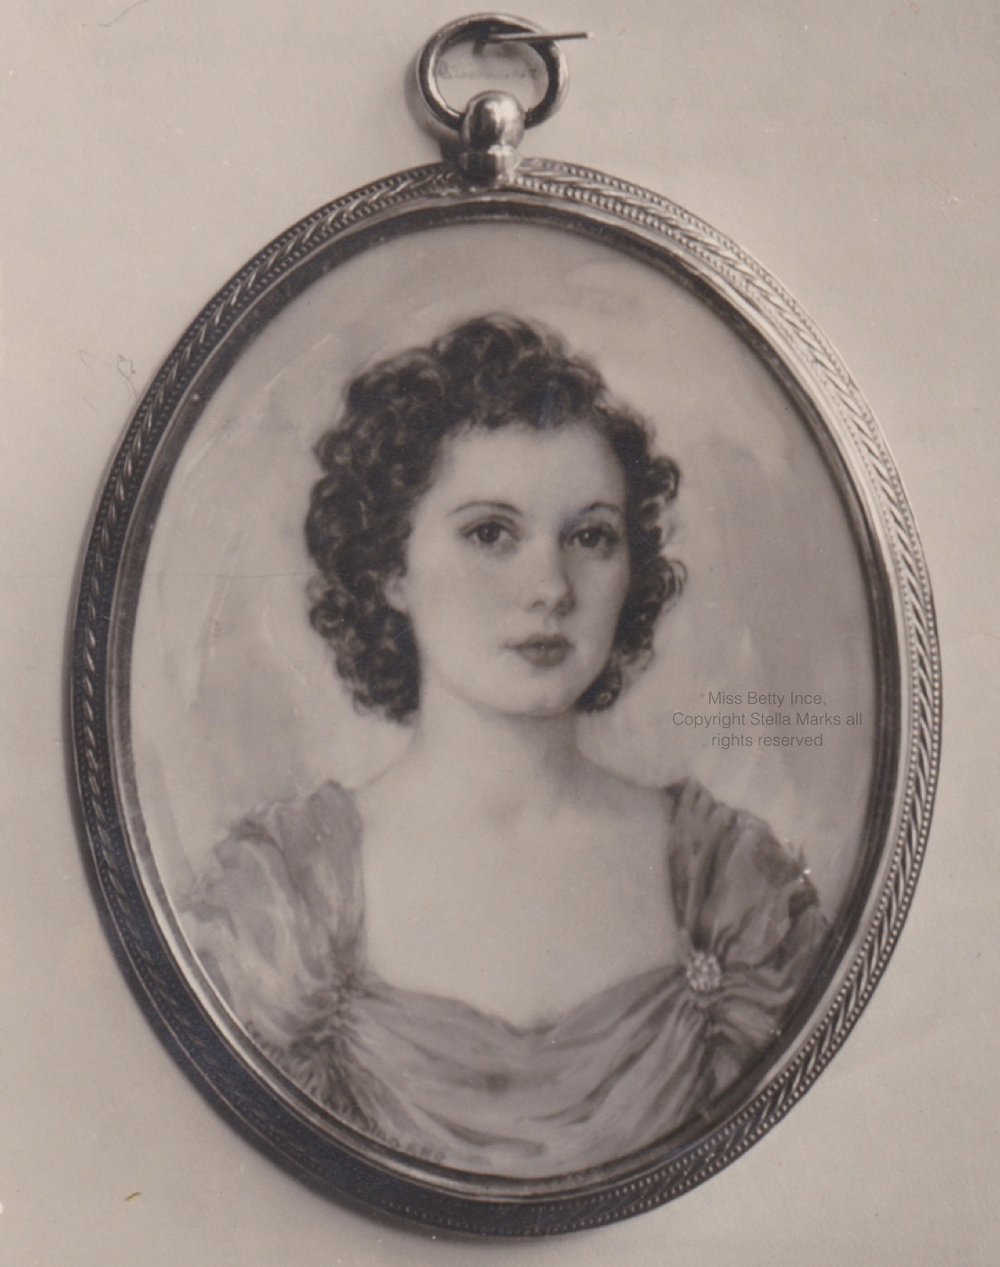 Portrait Miniature by Stella Marks of Miss Betty Ince of Melbourne. first ever theft from the royal Scottish academy. Copyright Stella Marks' Estate All rights reserved